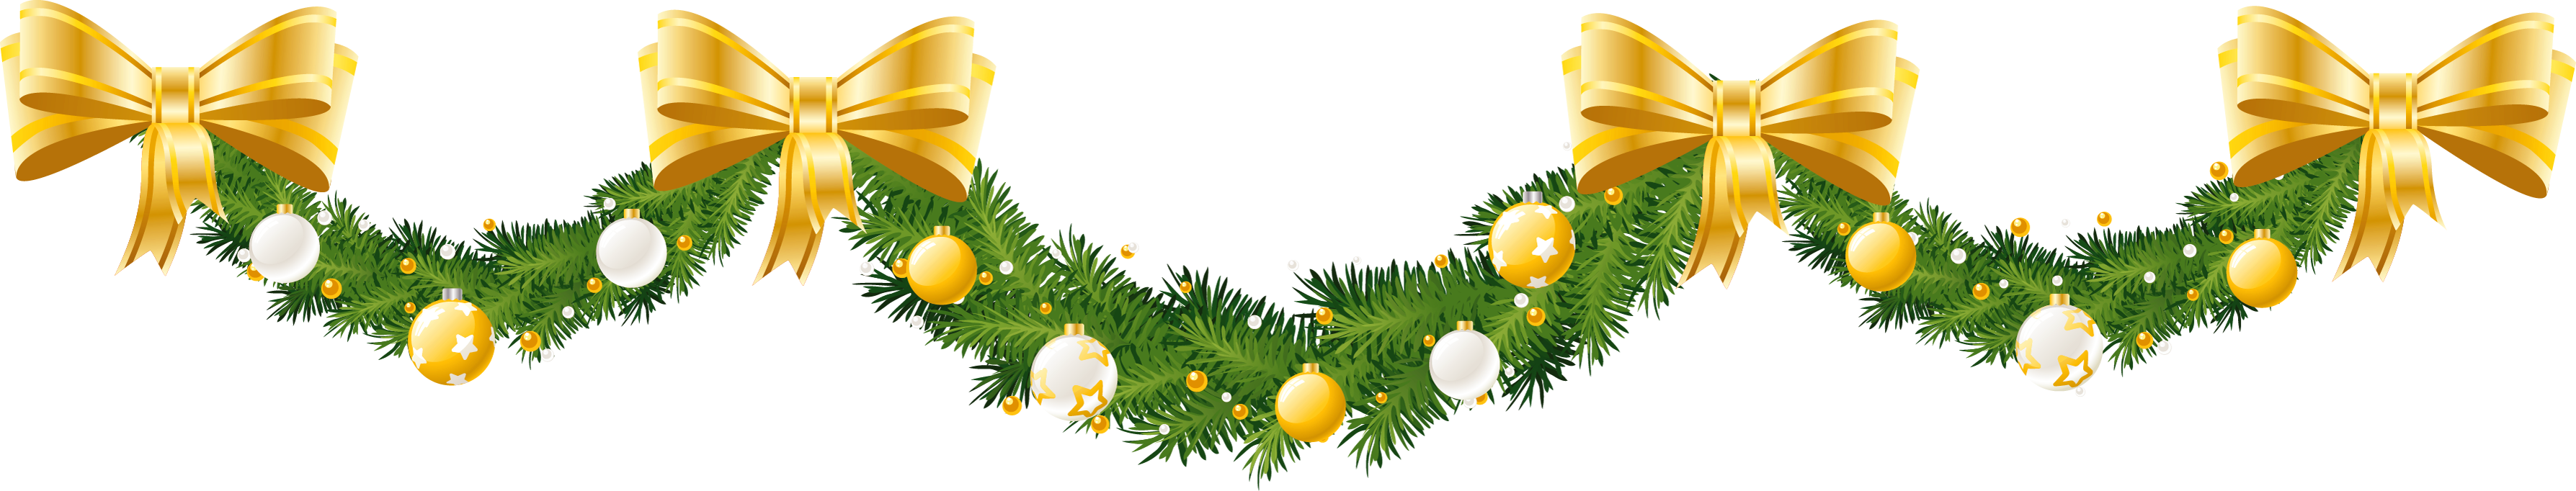 Clipart panda free images. Christmas garland border transparent png